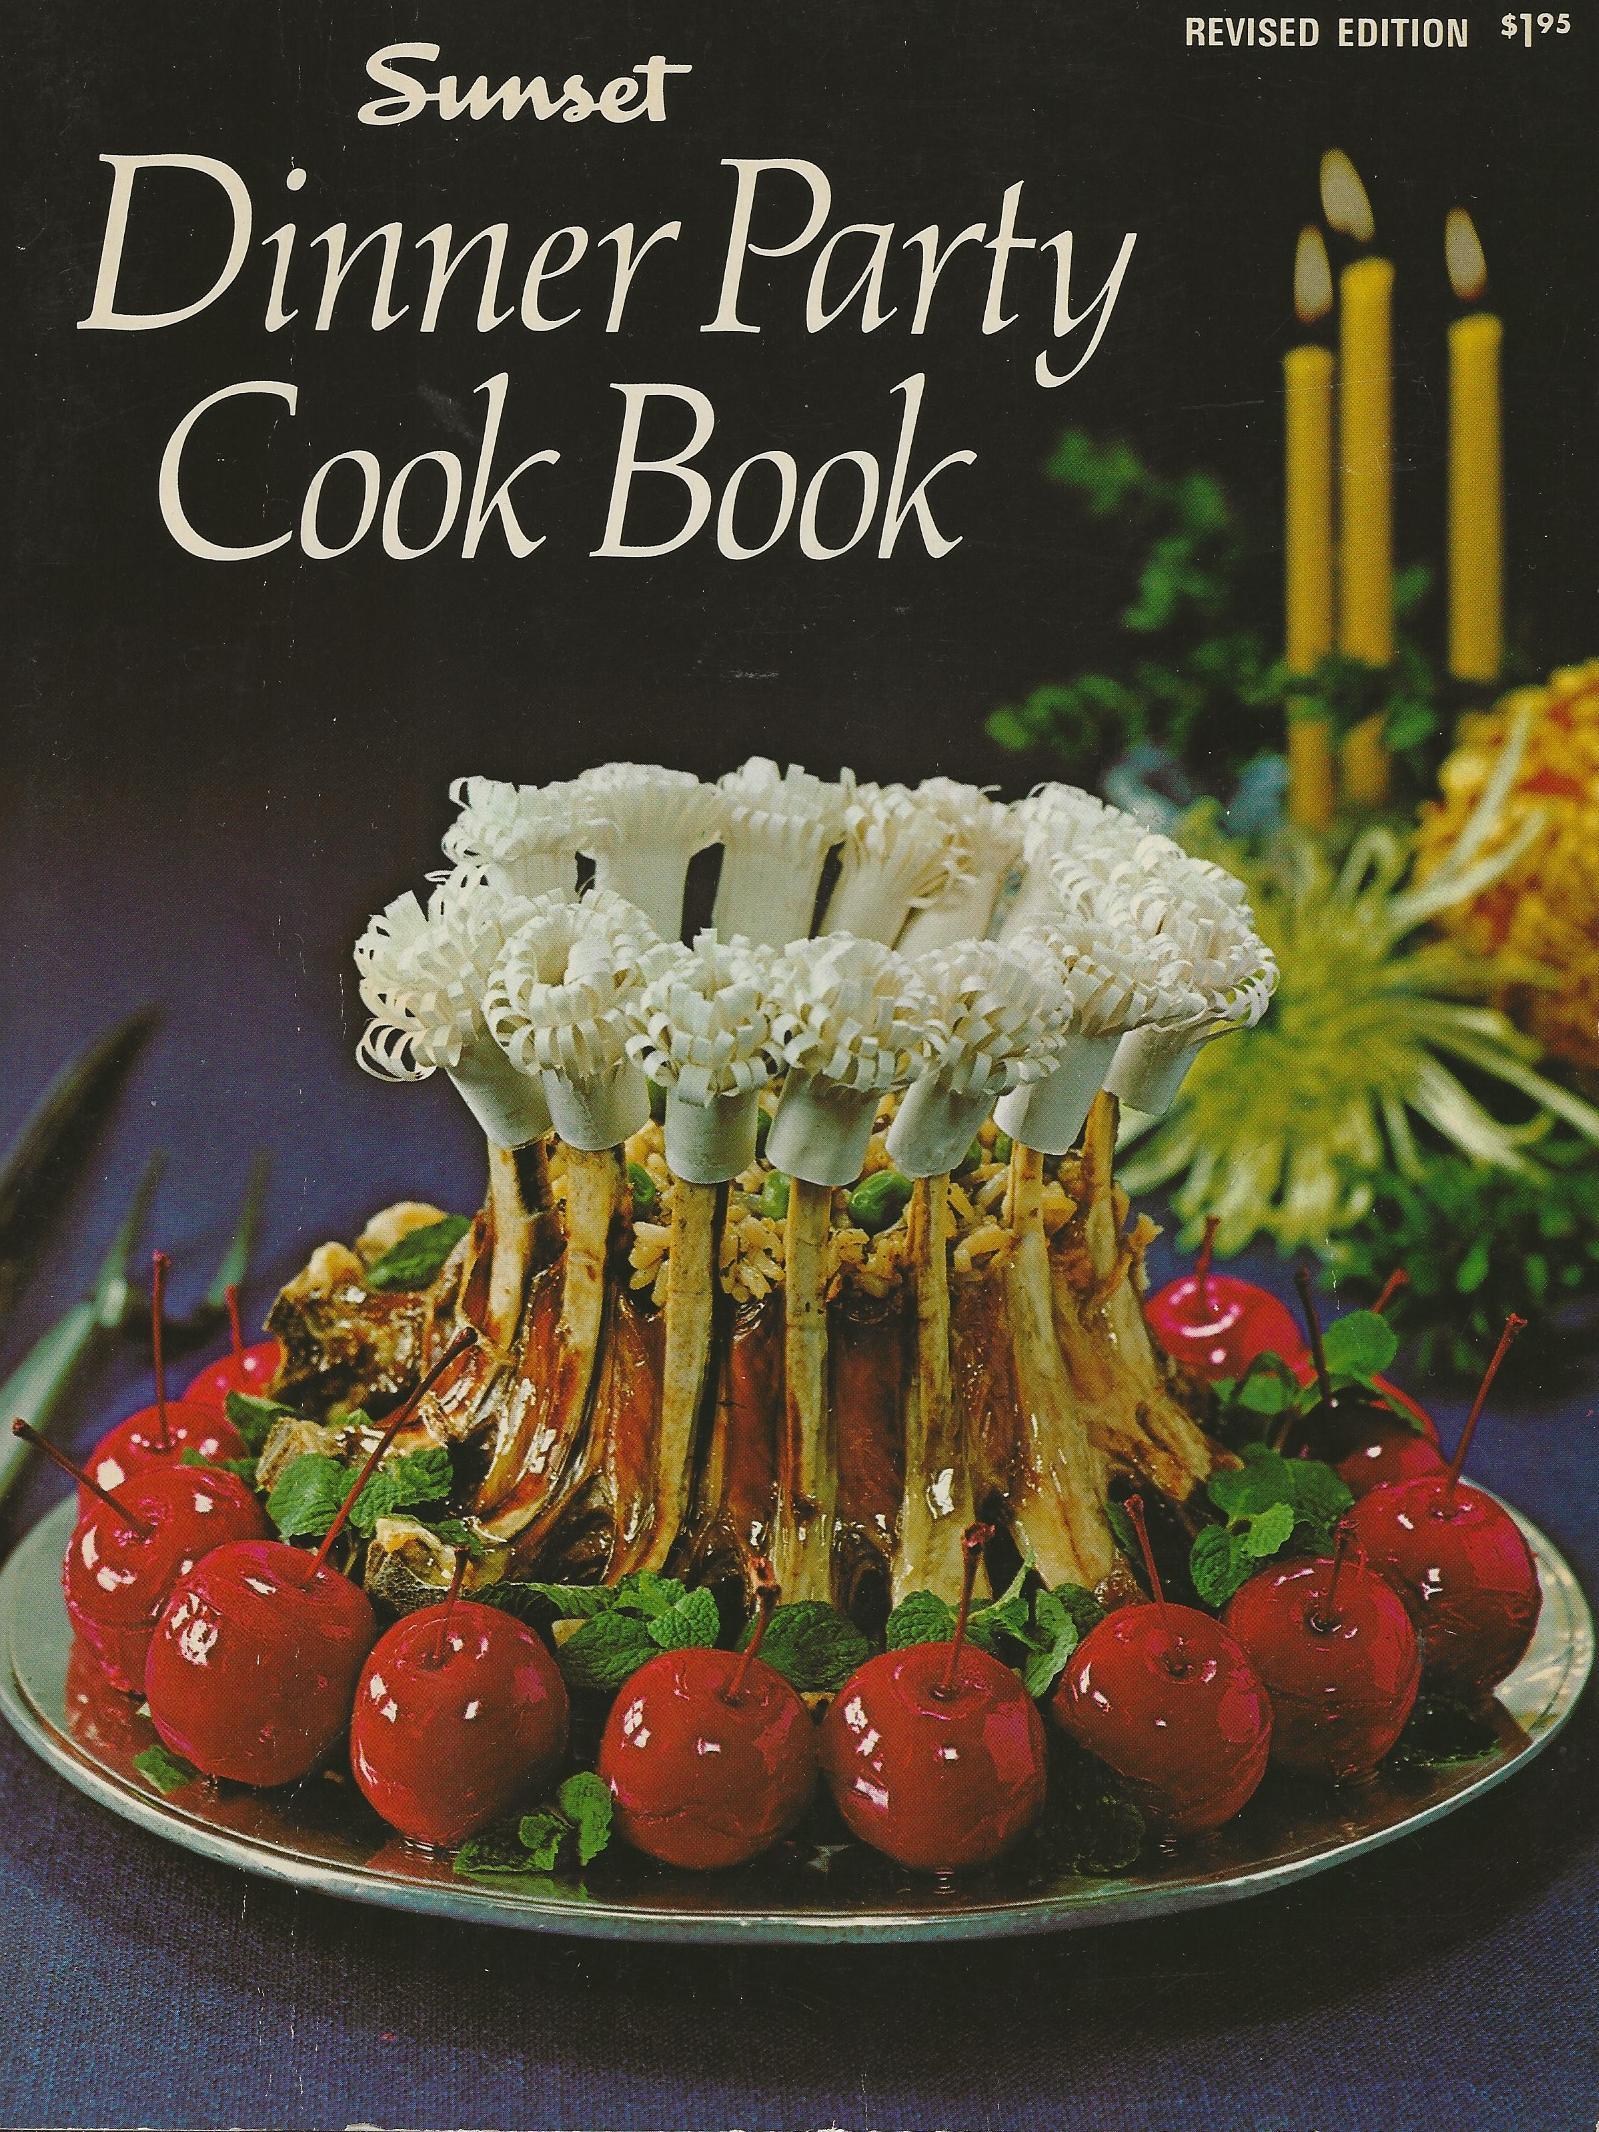 Image for DINNER PARTY COOK BOOK